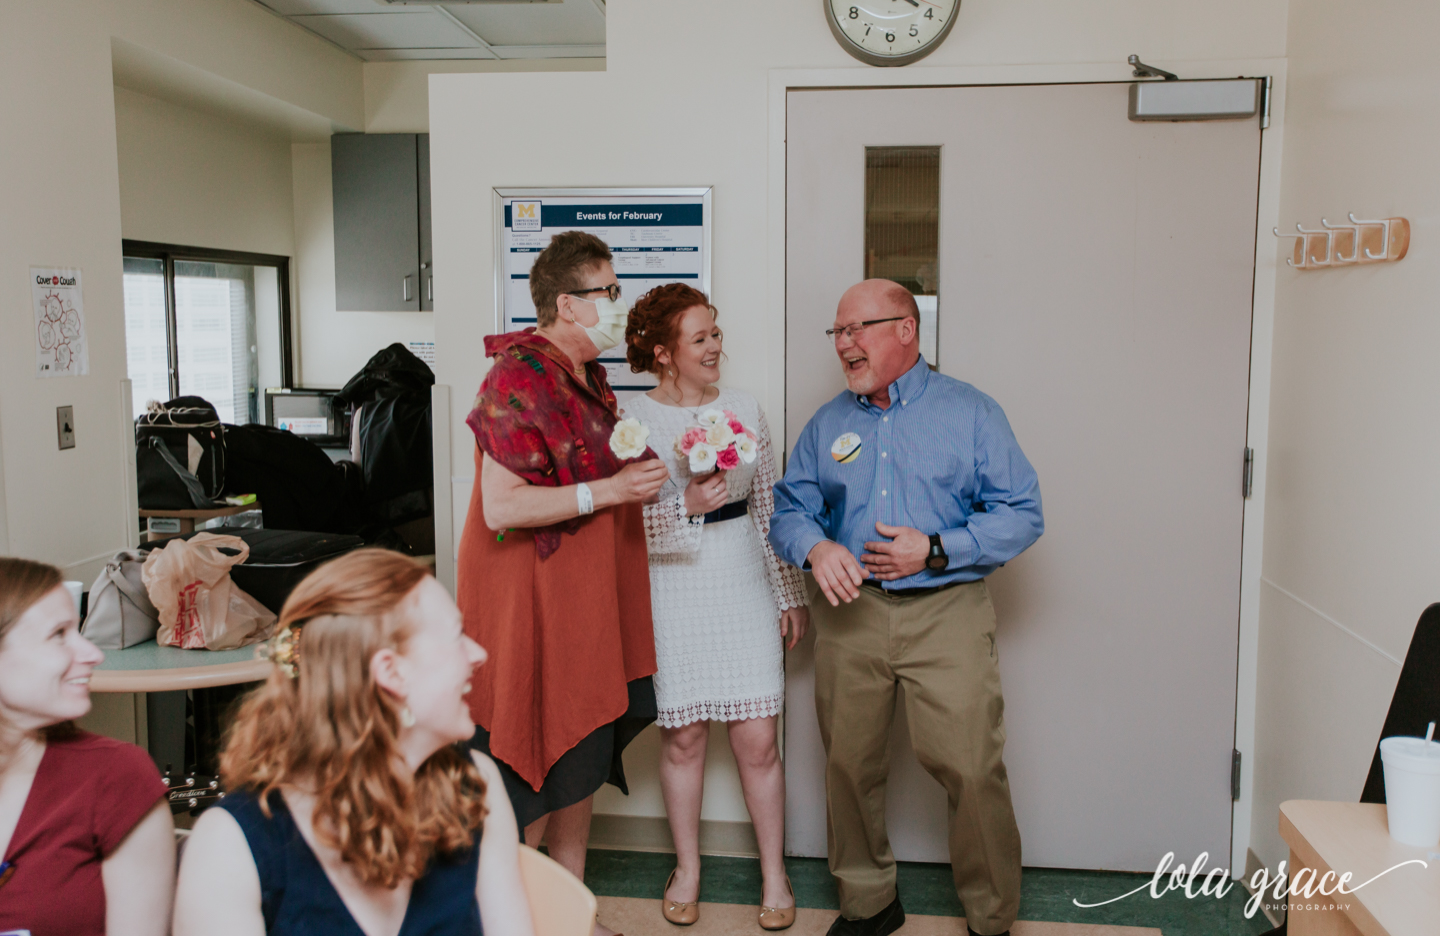 lola-grace-photography-uofm-hospital-wedding-1.jpg